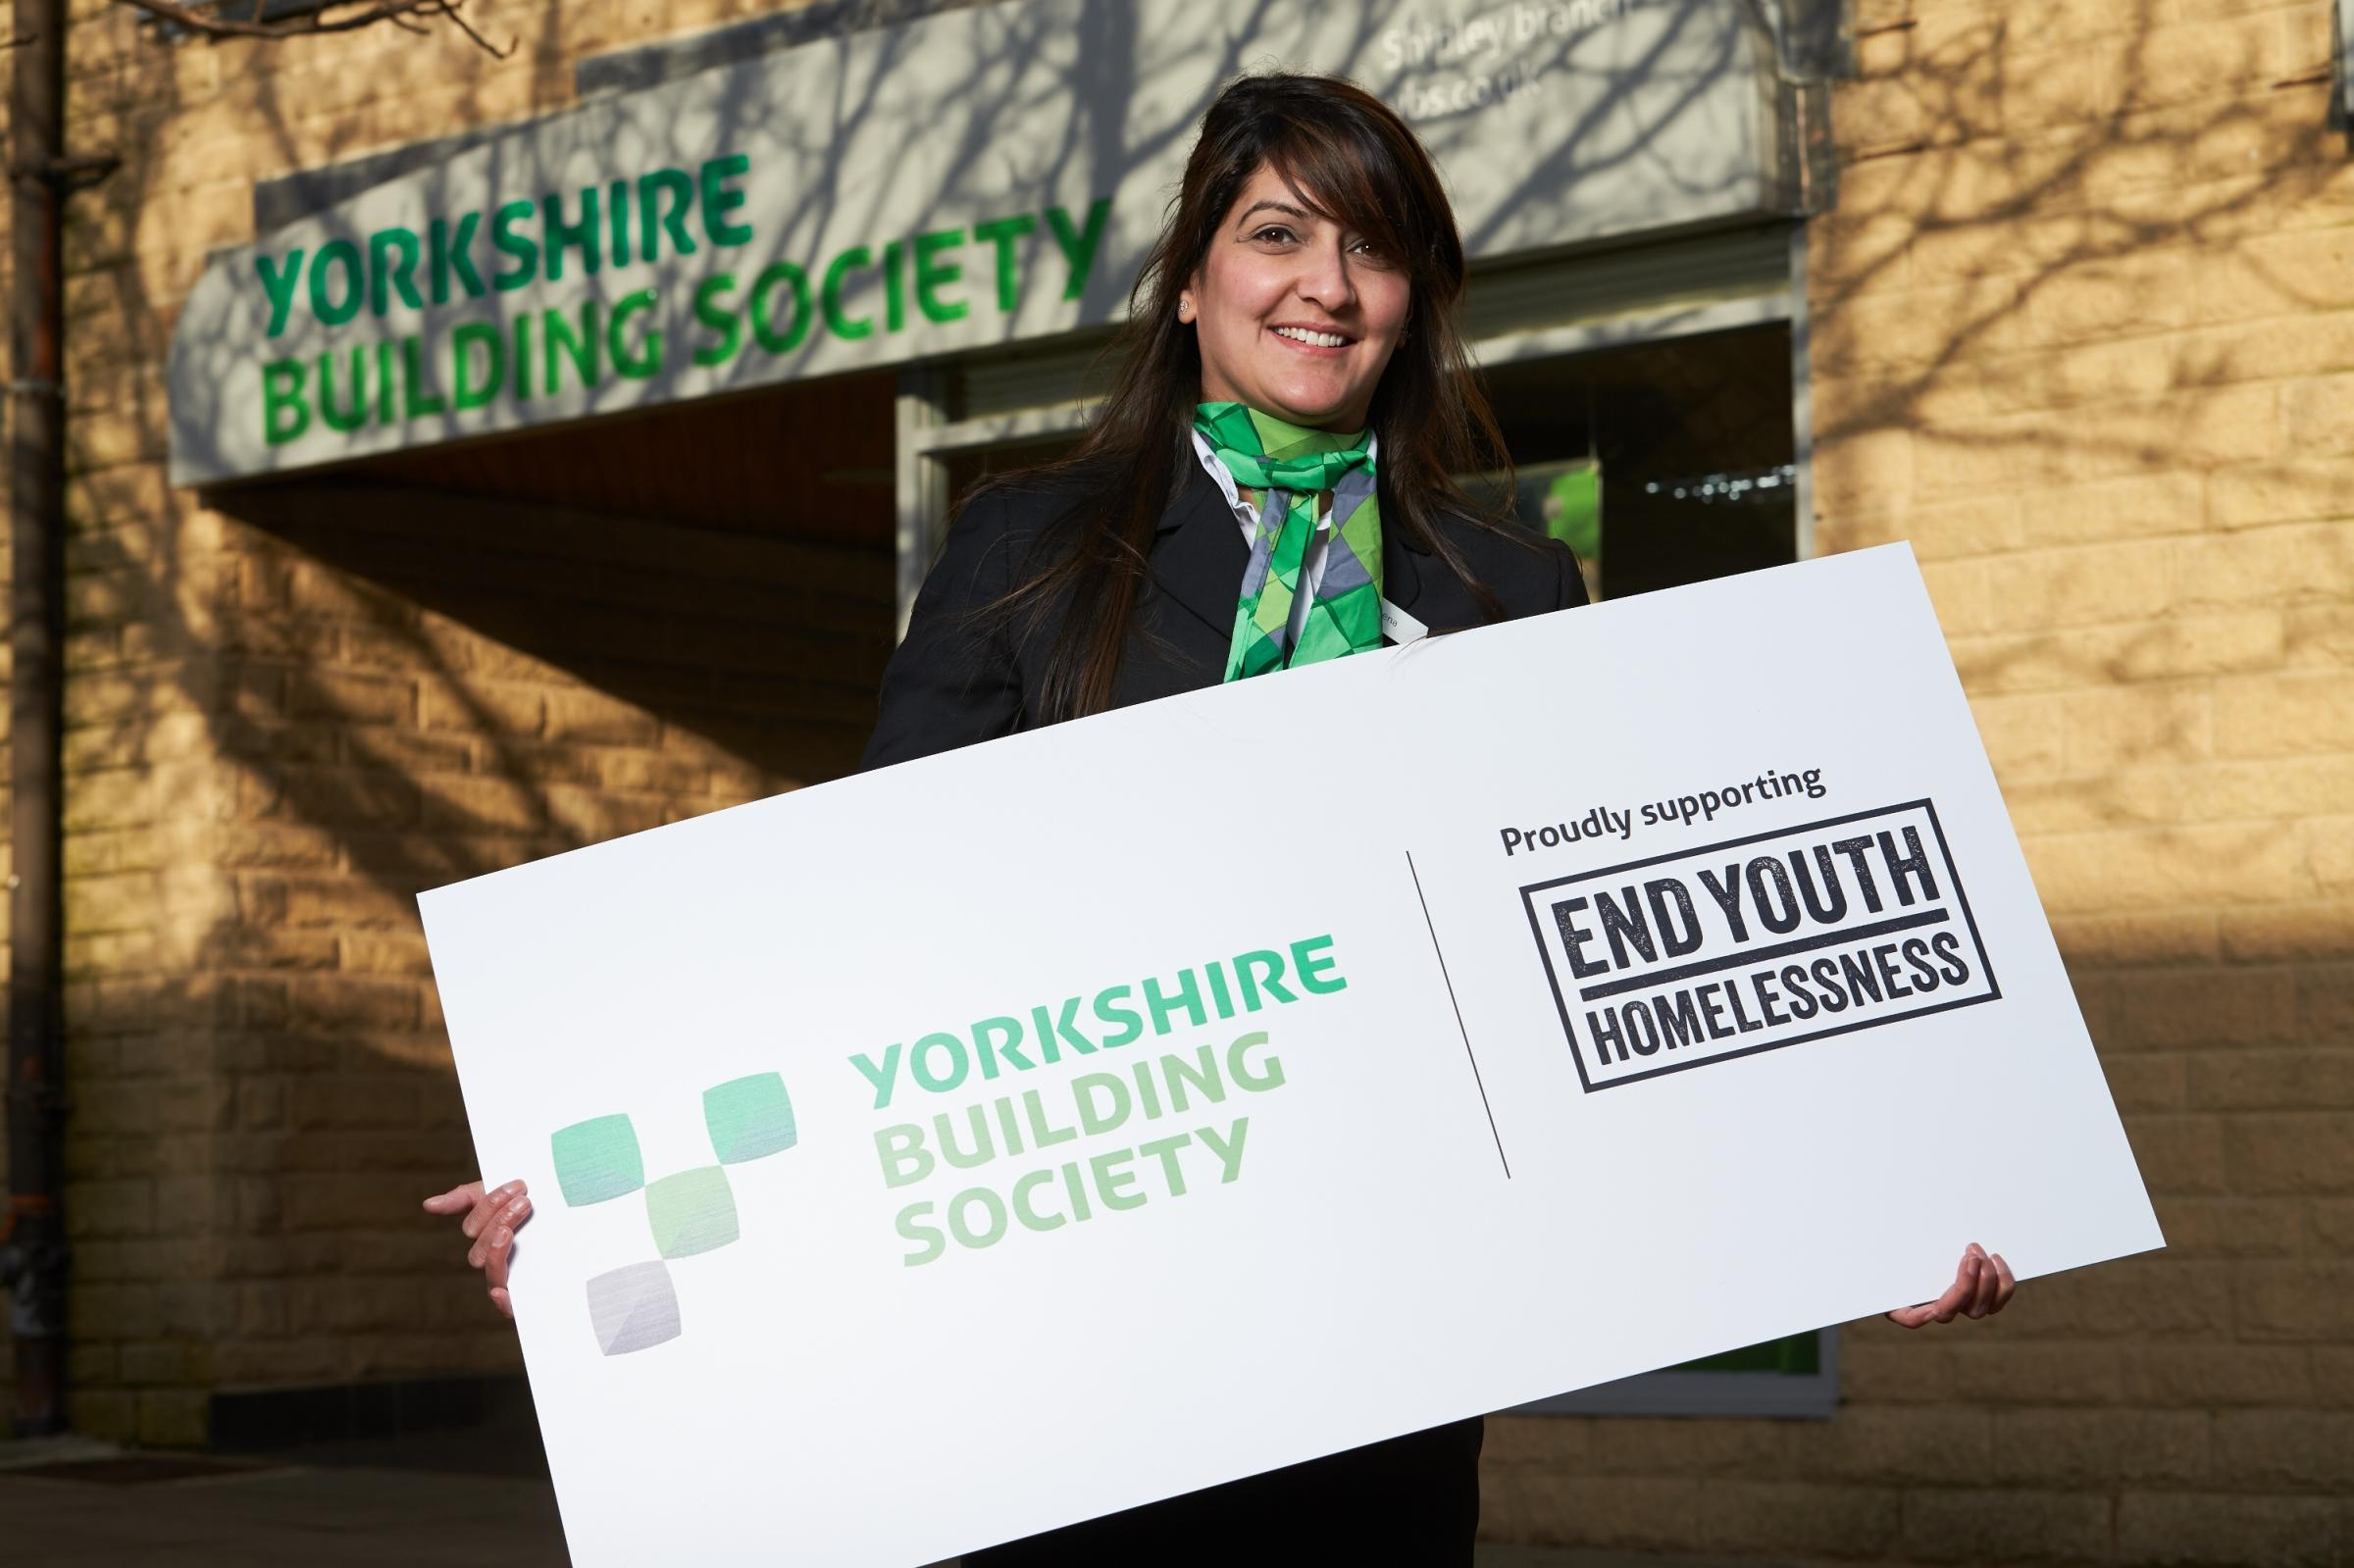 Yorkshire Building Society is supporting End Youth Homelessness